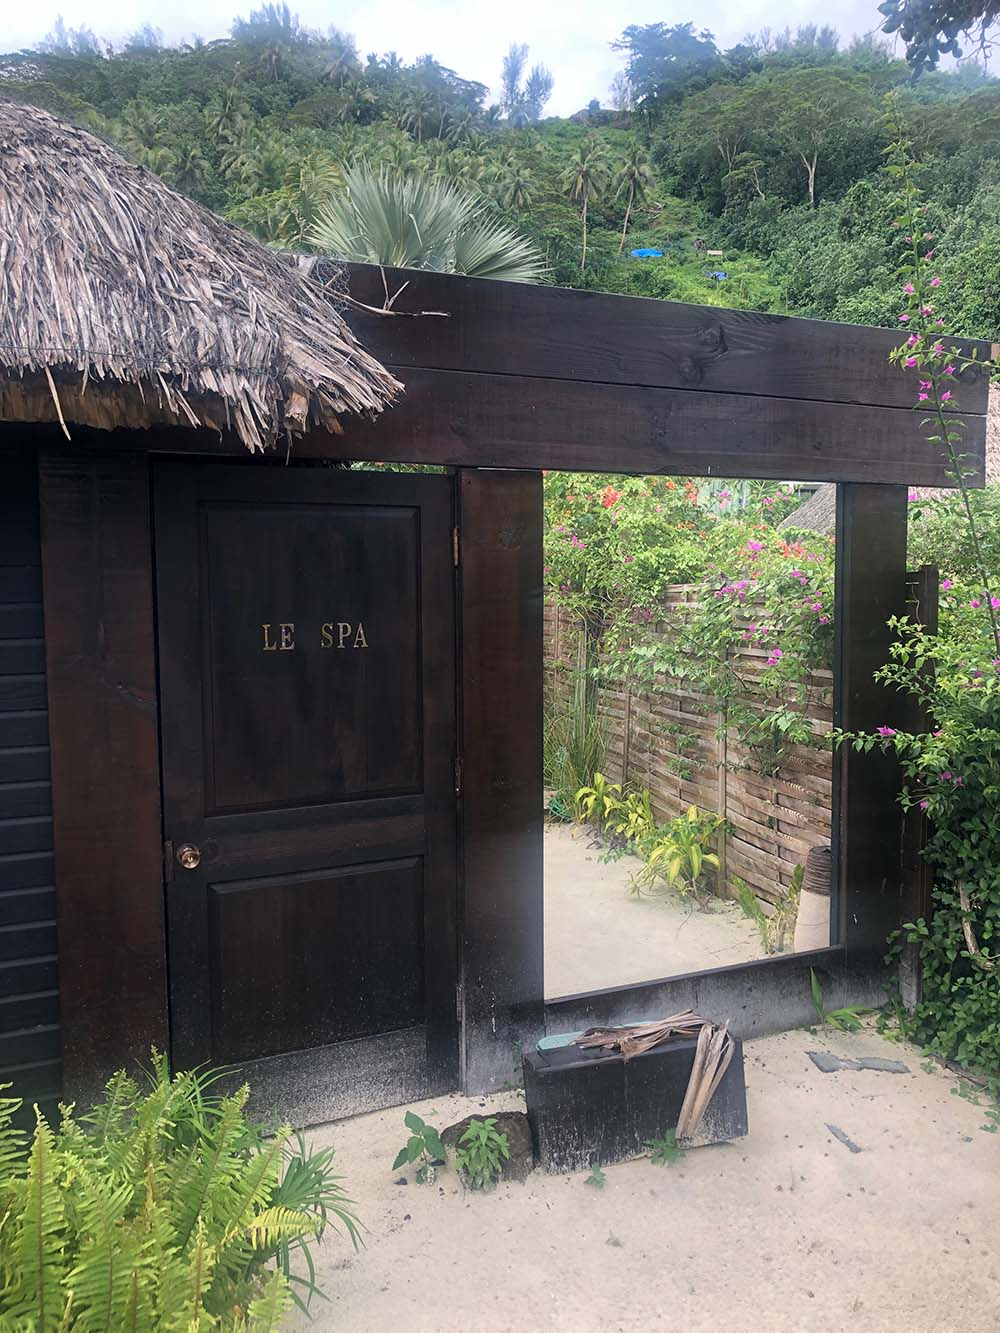 Le Petit Spa Matira is located within the Coqui Coqui Boutique in Bora Bora.